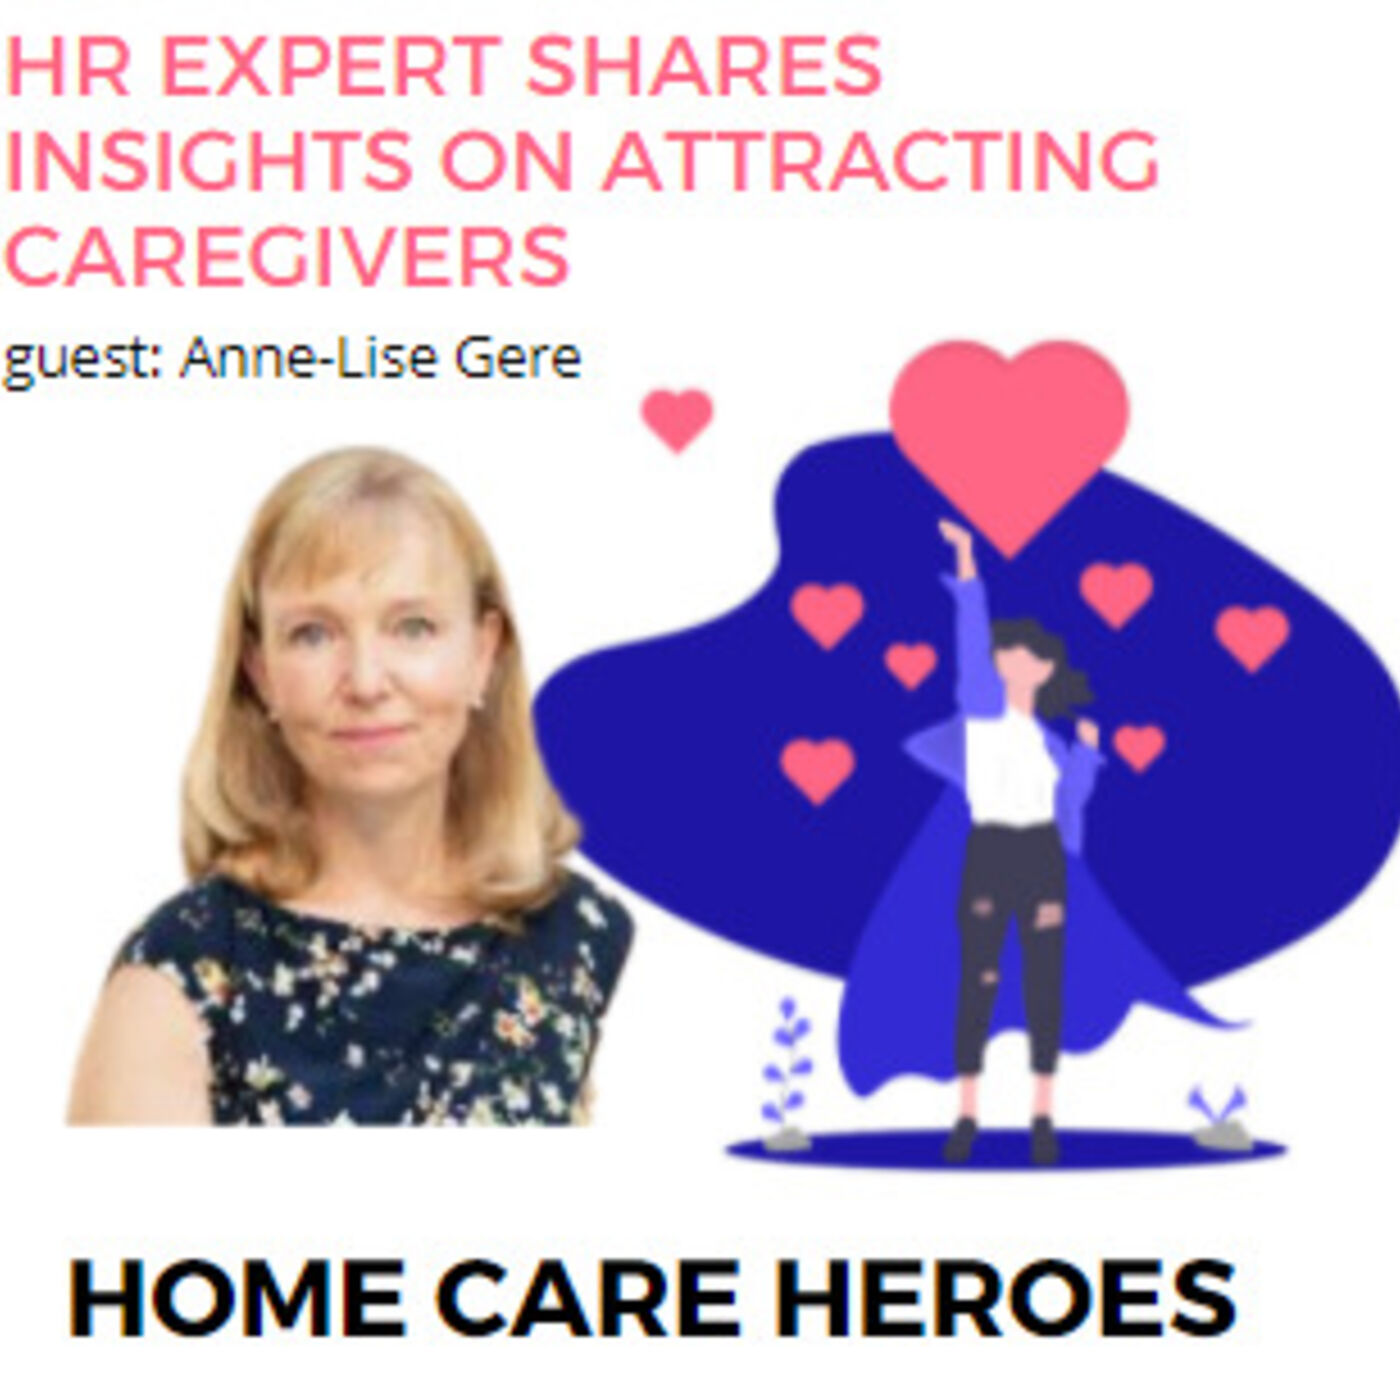 HR Expert shares insights on attracting caregivers: with Anne-Lise Gere